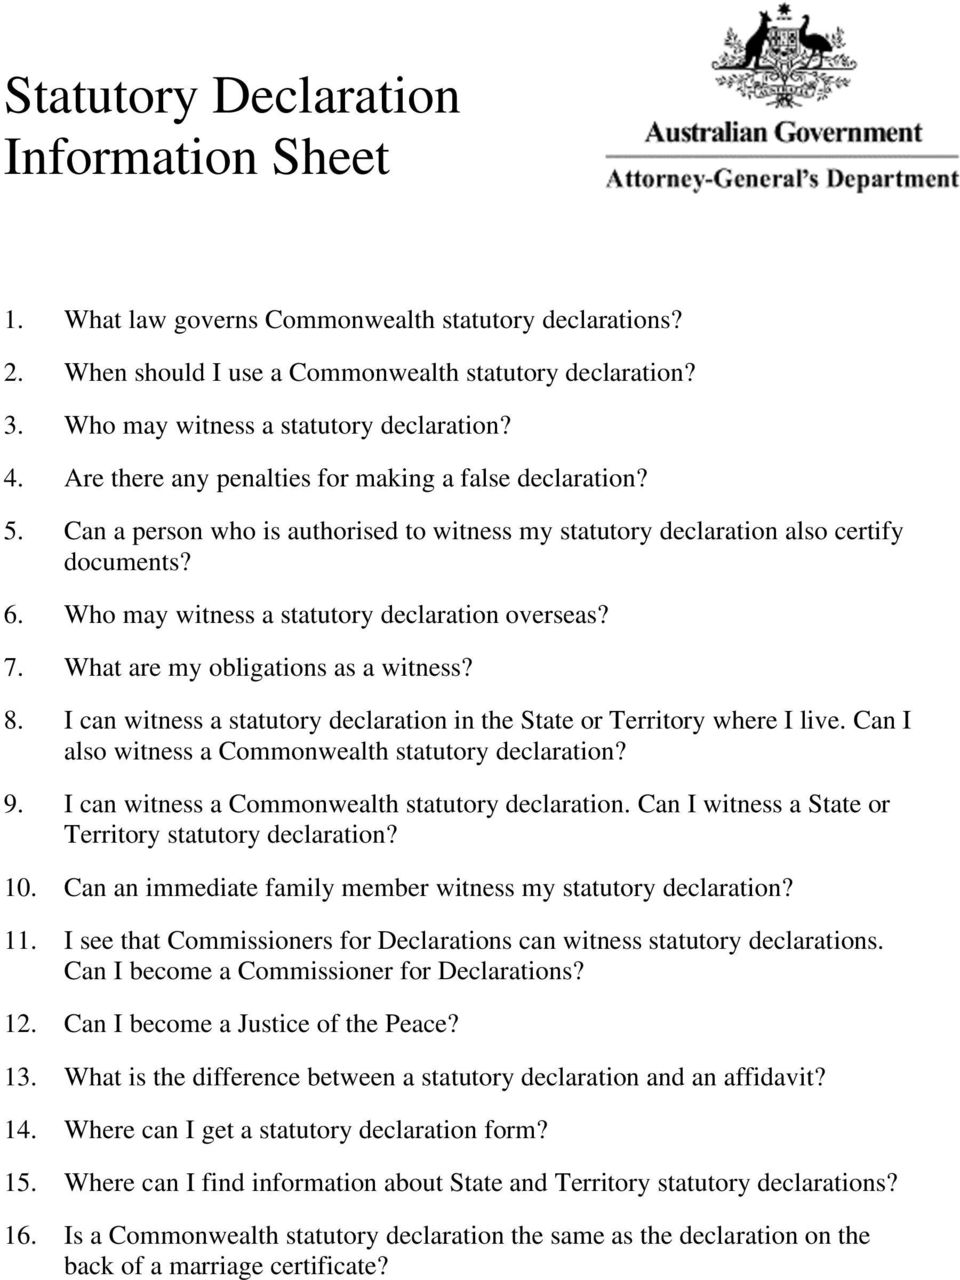 Statutory declaration information sheet pdf who may witness a statutory declaration overseas 7 what are my obligations as a thecheapjerseys Images